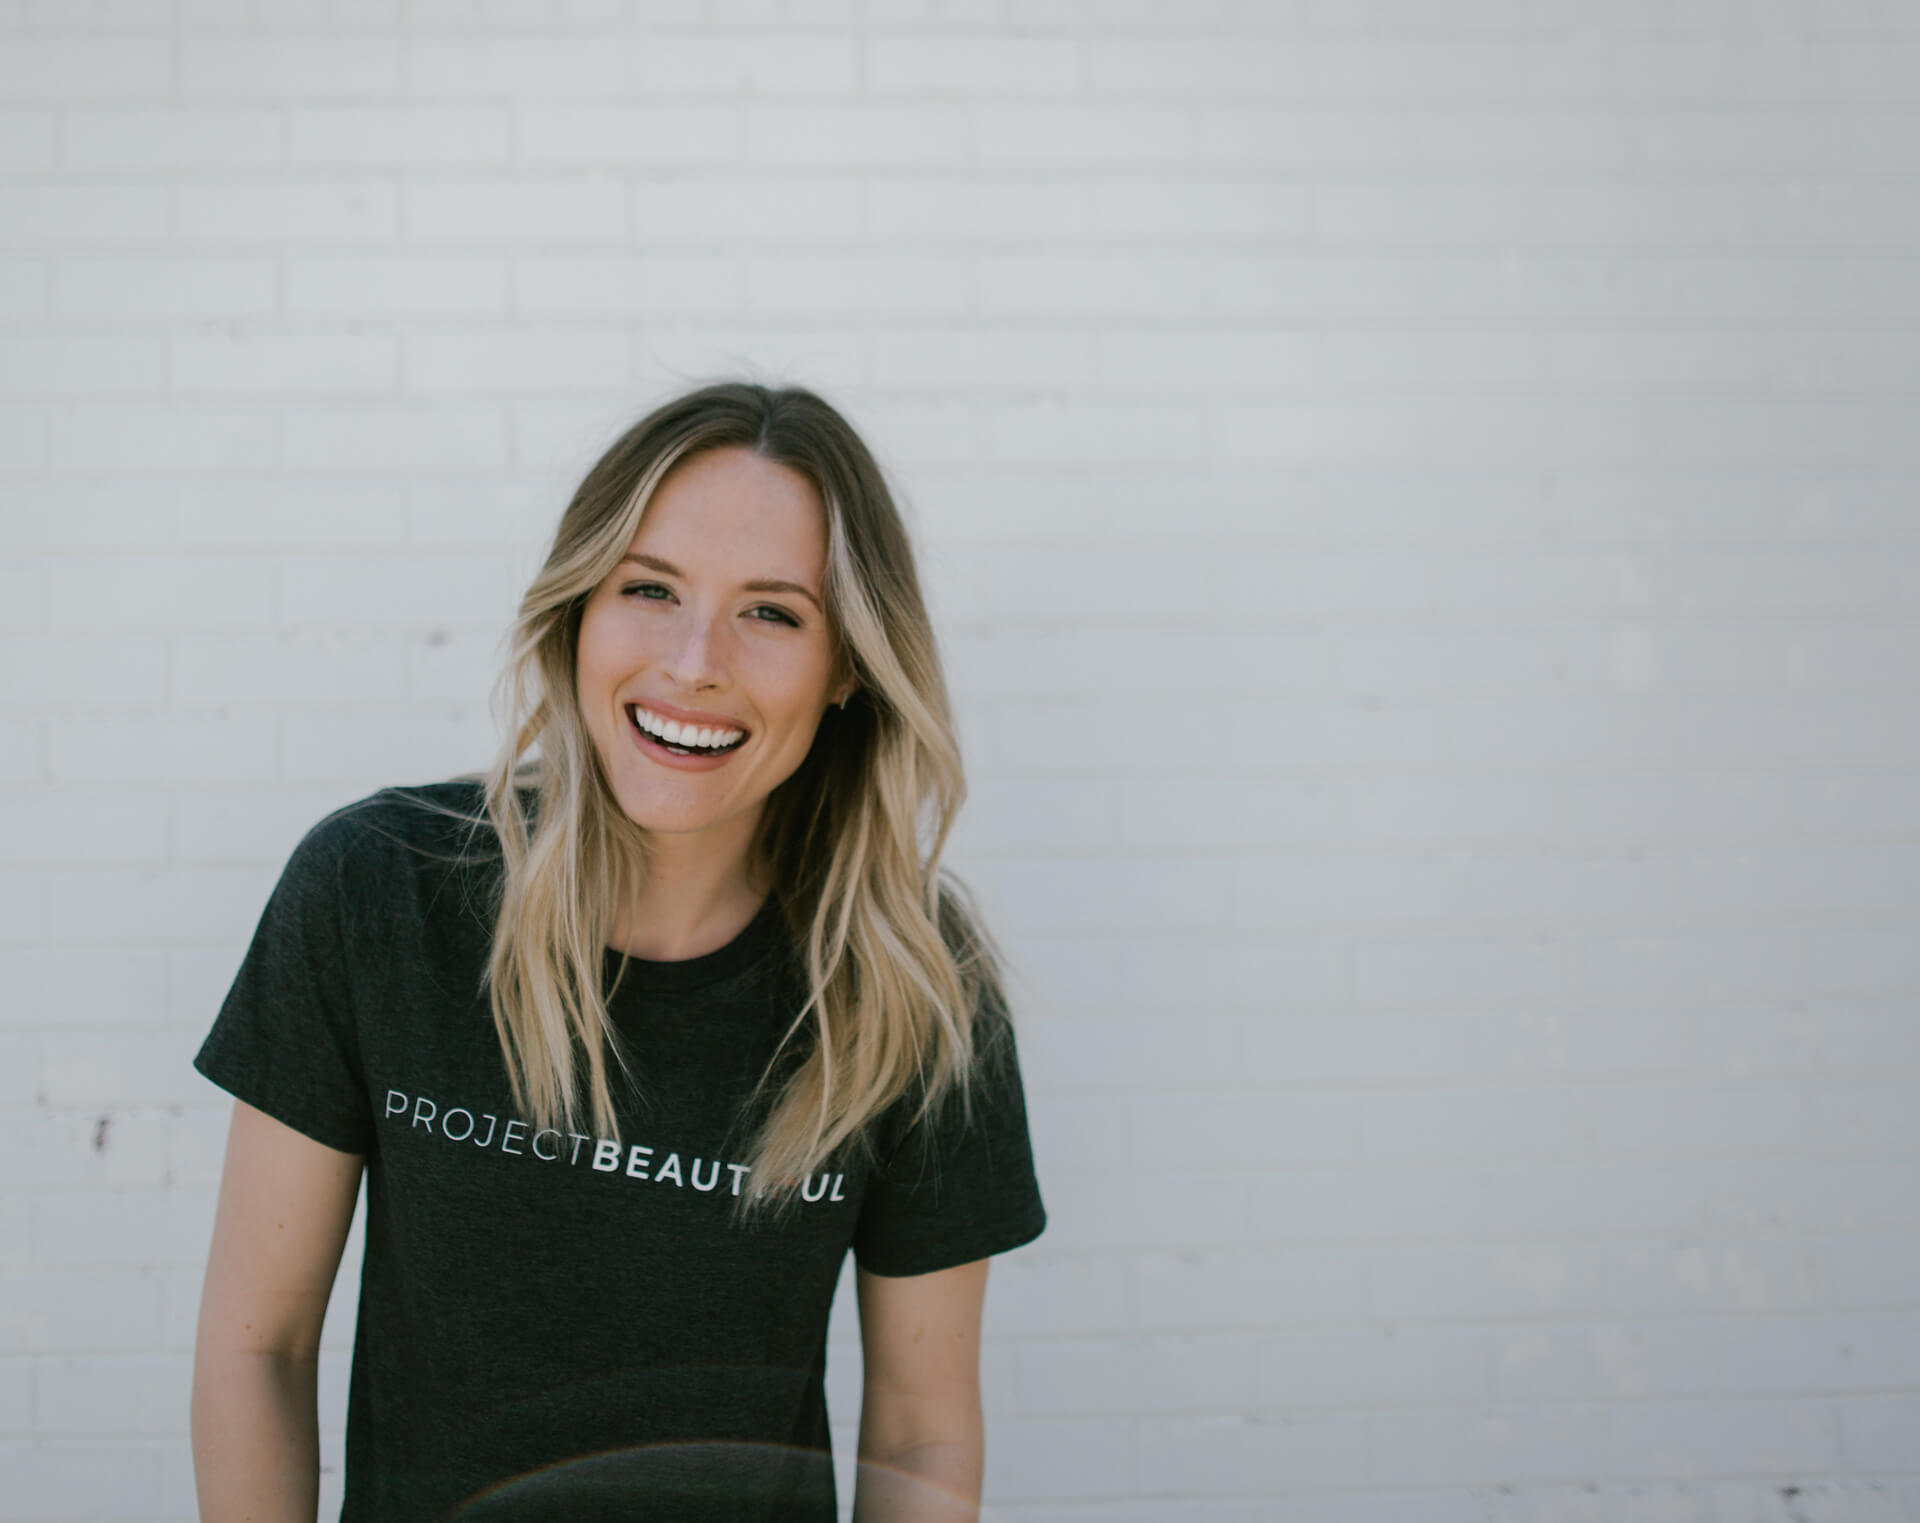 project_beautiful_tshirt_hannah_huston